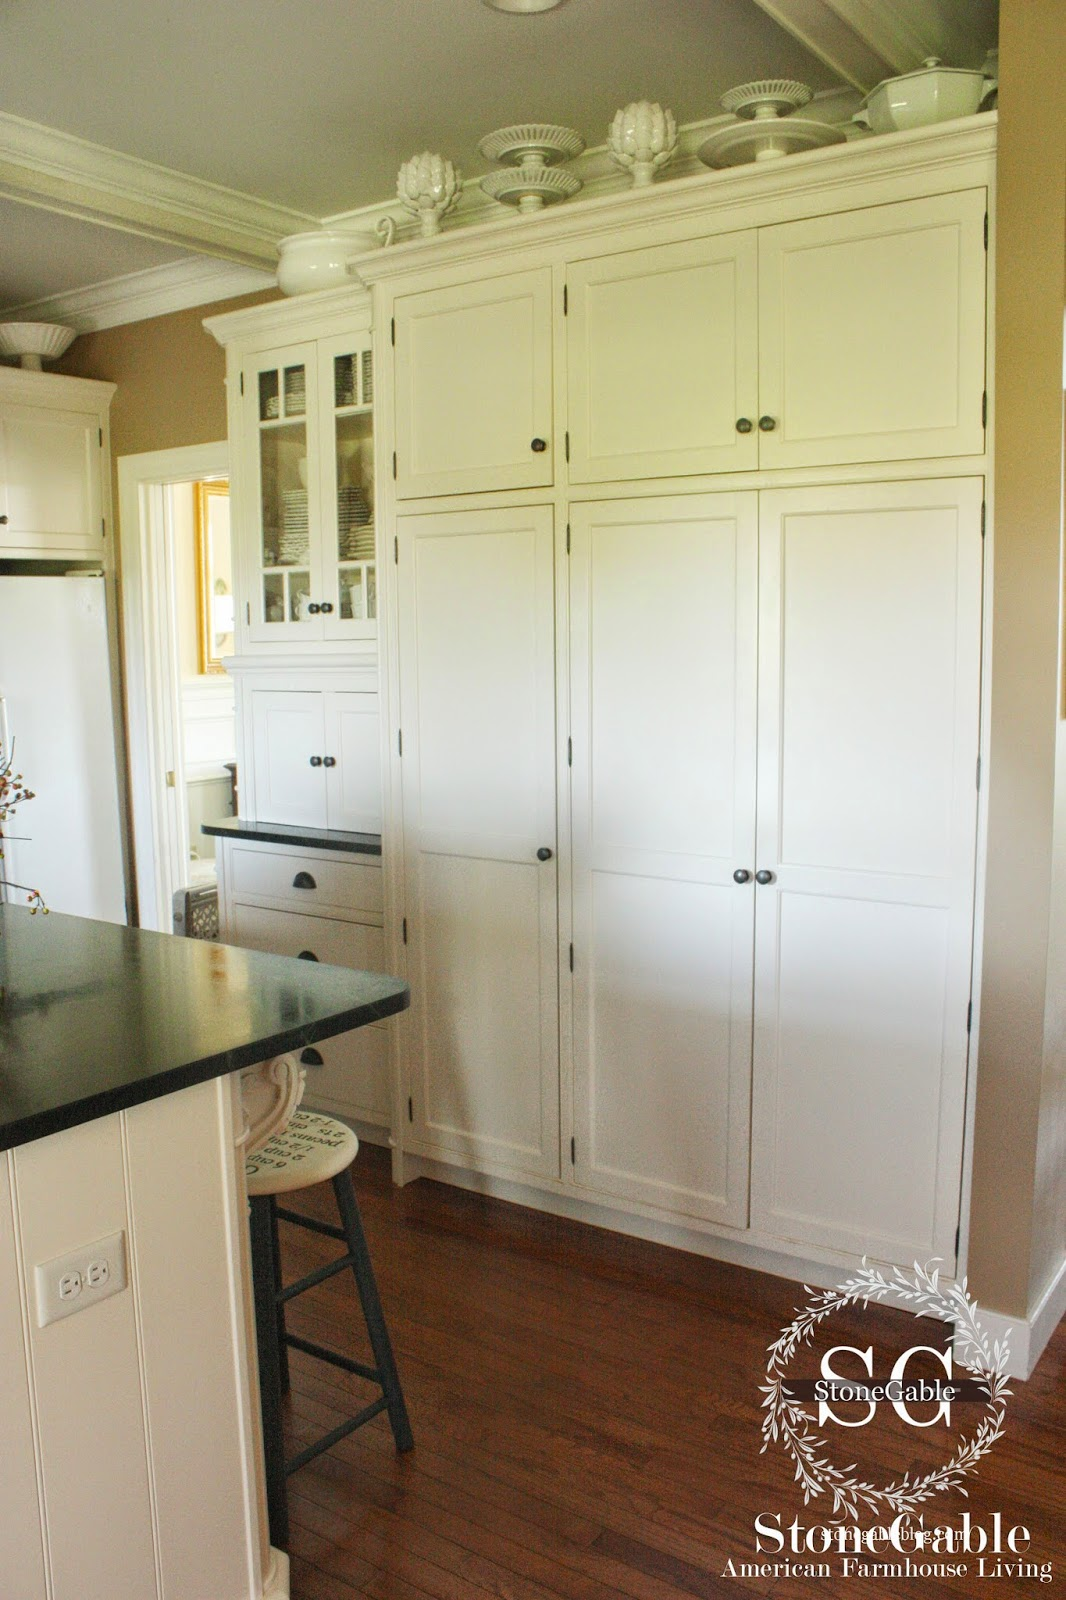 farmhouse sink farmhouse sinks are big and open and